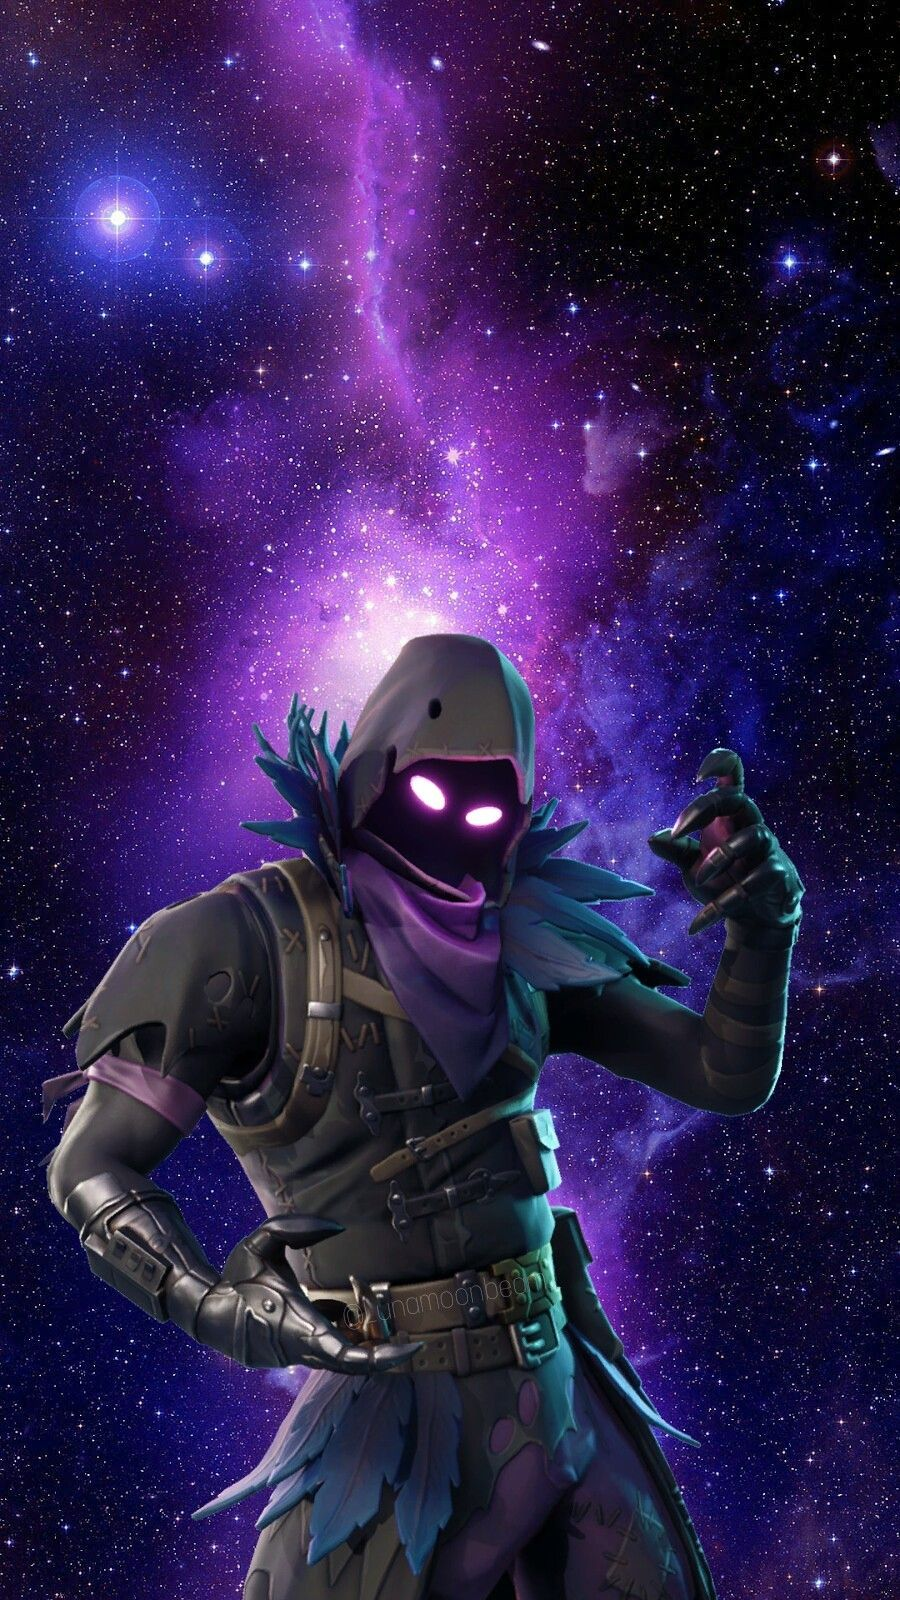 Free Download Fortnite Skin Wallpapers Top Fortnite Skin Backgrounds 900x1600 For Your Desktop Mobile Tablet Explore 18 Galaxy Skin Fortnite Wallpapers Fortnite Galaxy Skin Wallpapers Galaxy Skin Fortnite Wallpapers